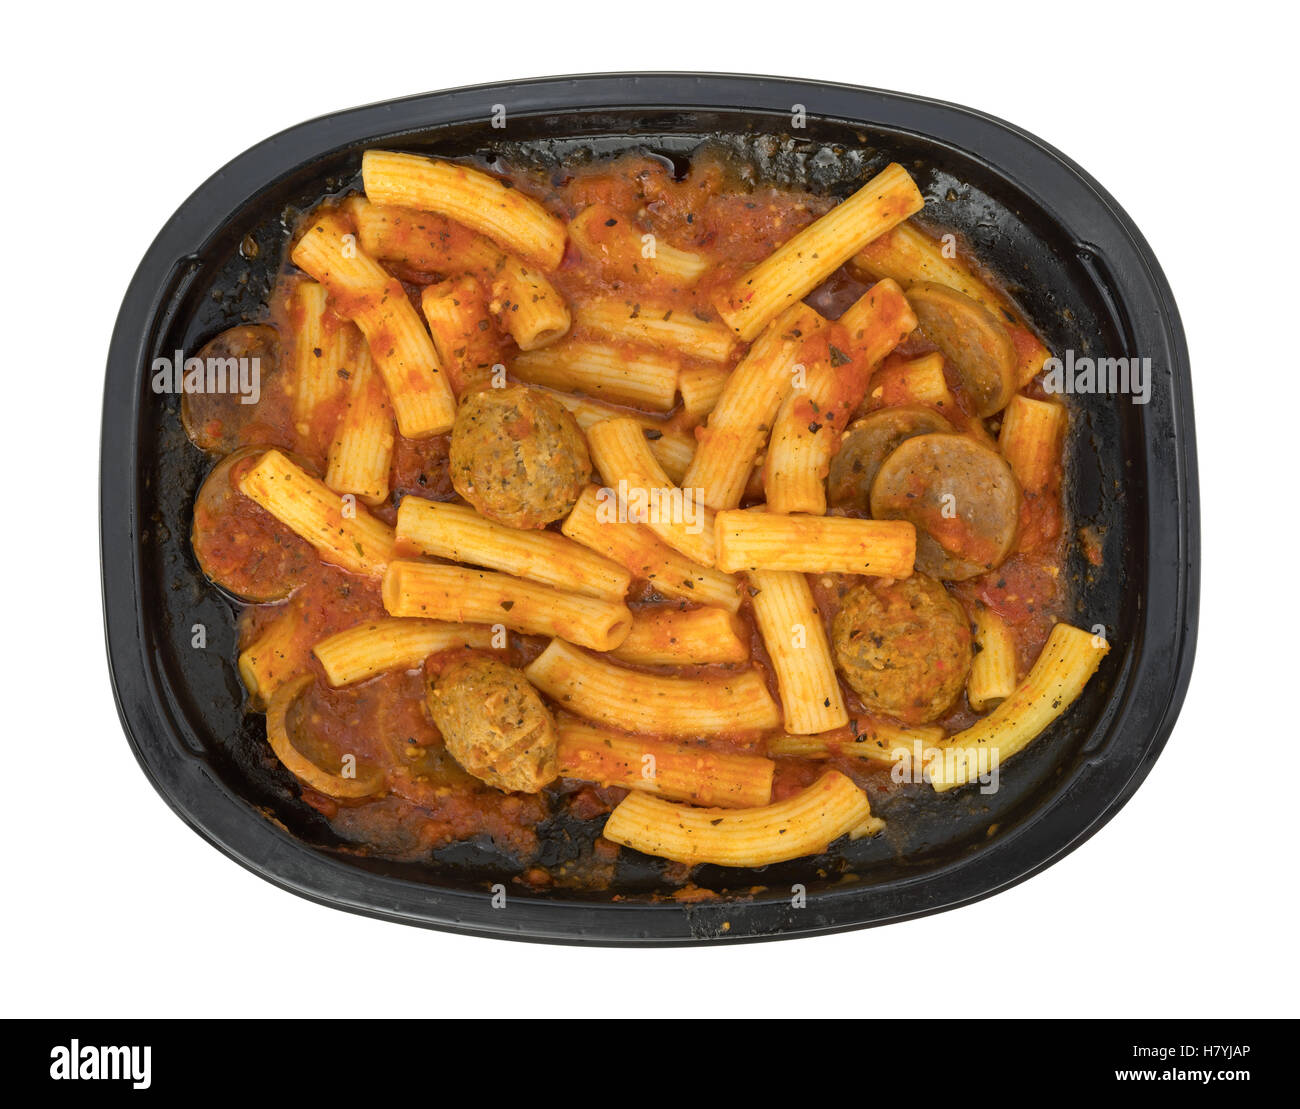 A TV dinner of rigatoni pasta with sausage and meatballs in a marinara sauce in a black tray isolated on a white - Stock Image